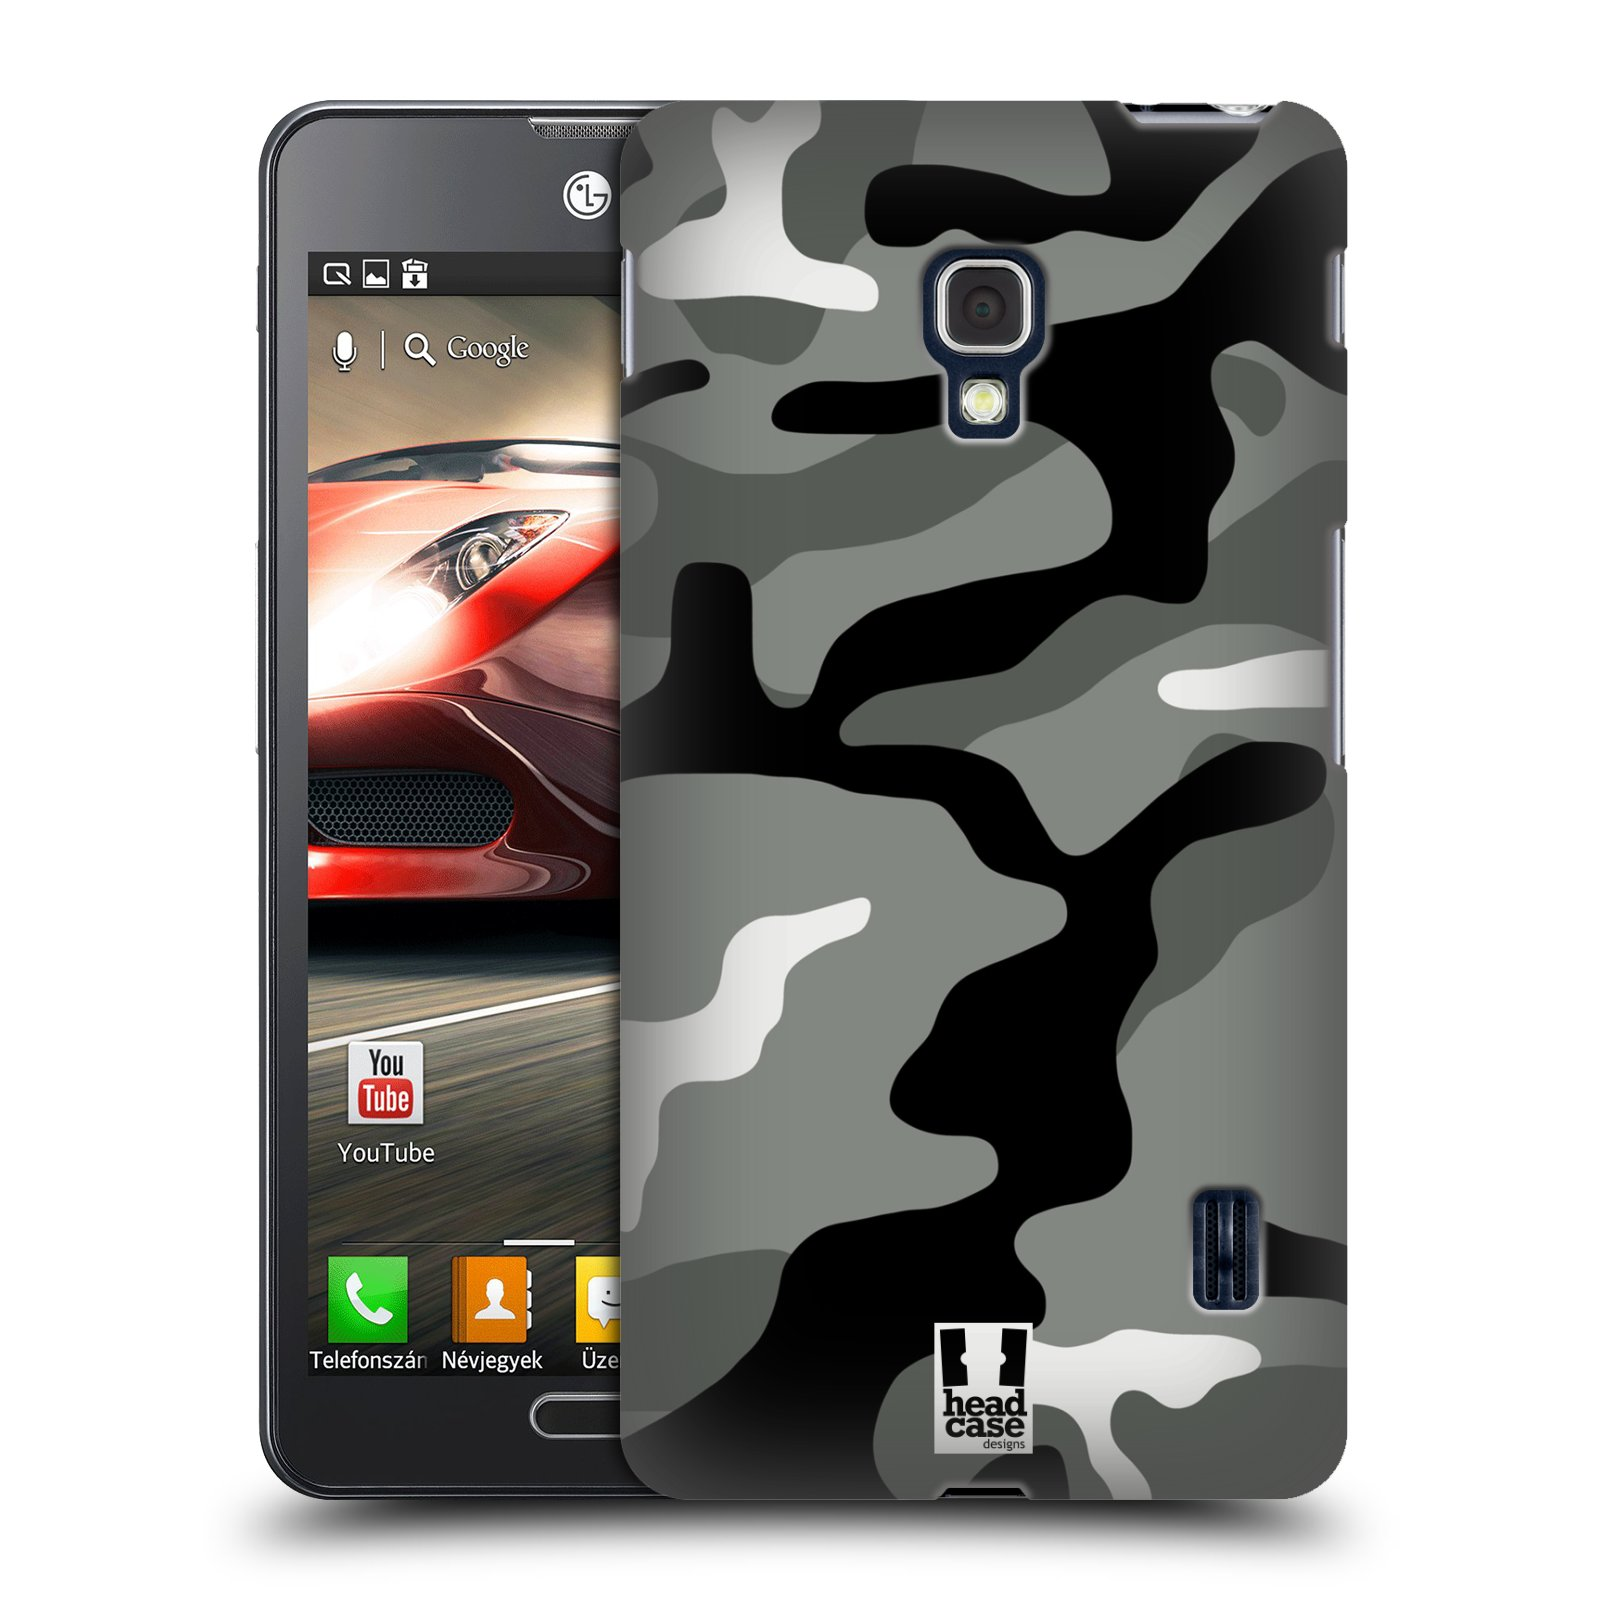 Head Case Design Military Camo Hard Lg Phones 3